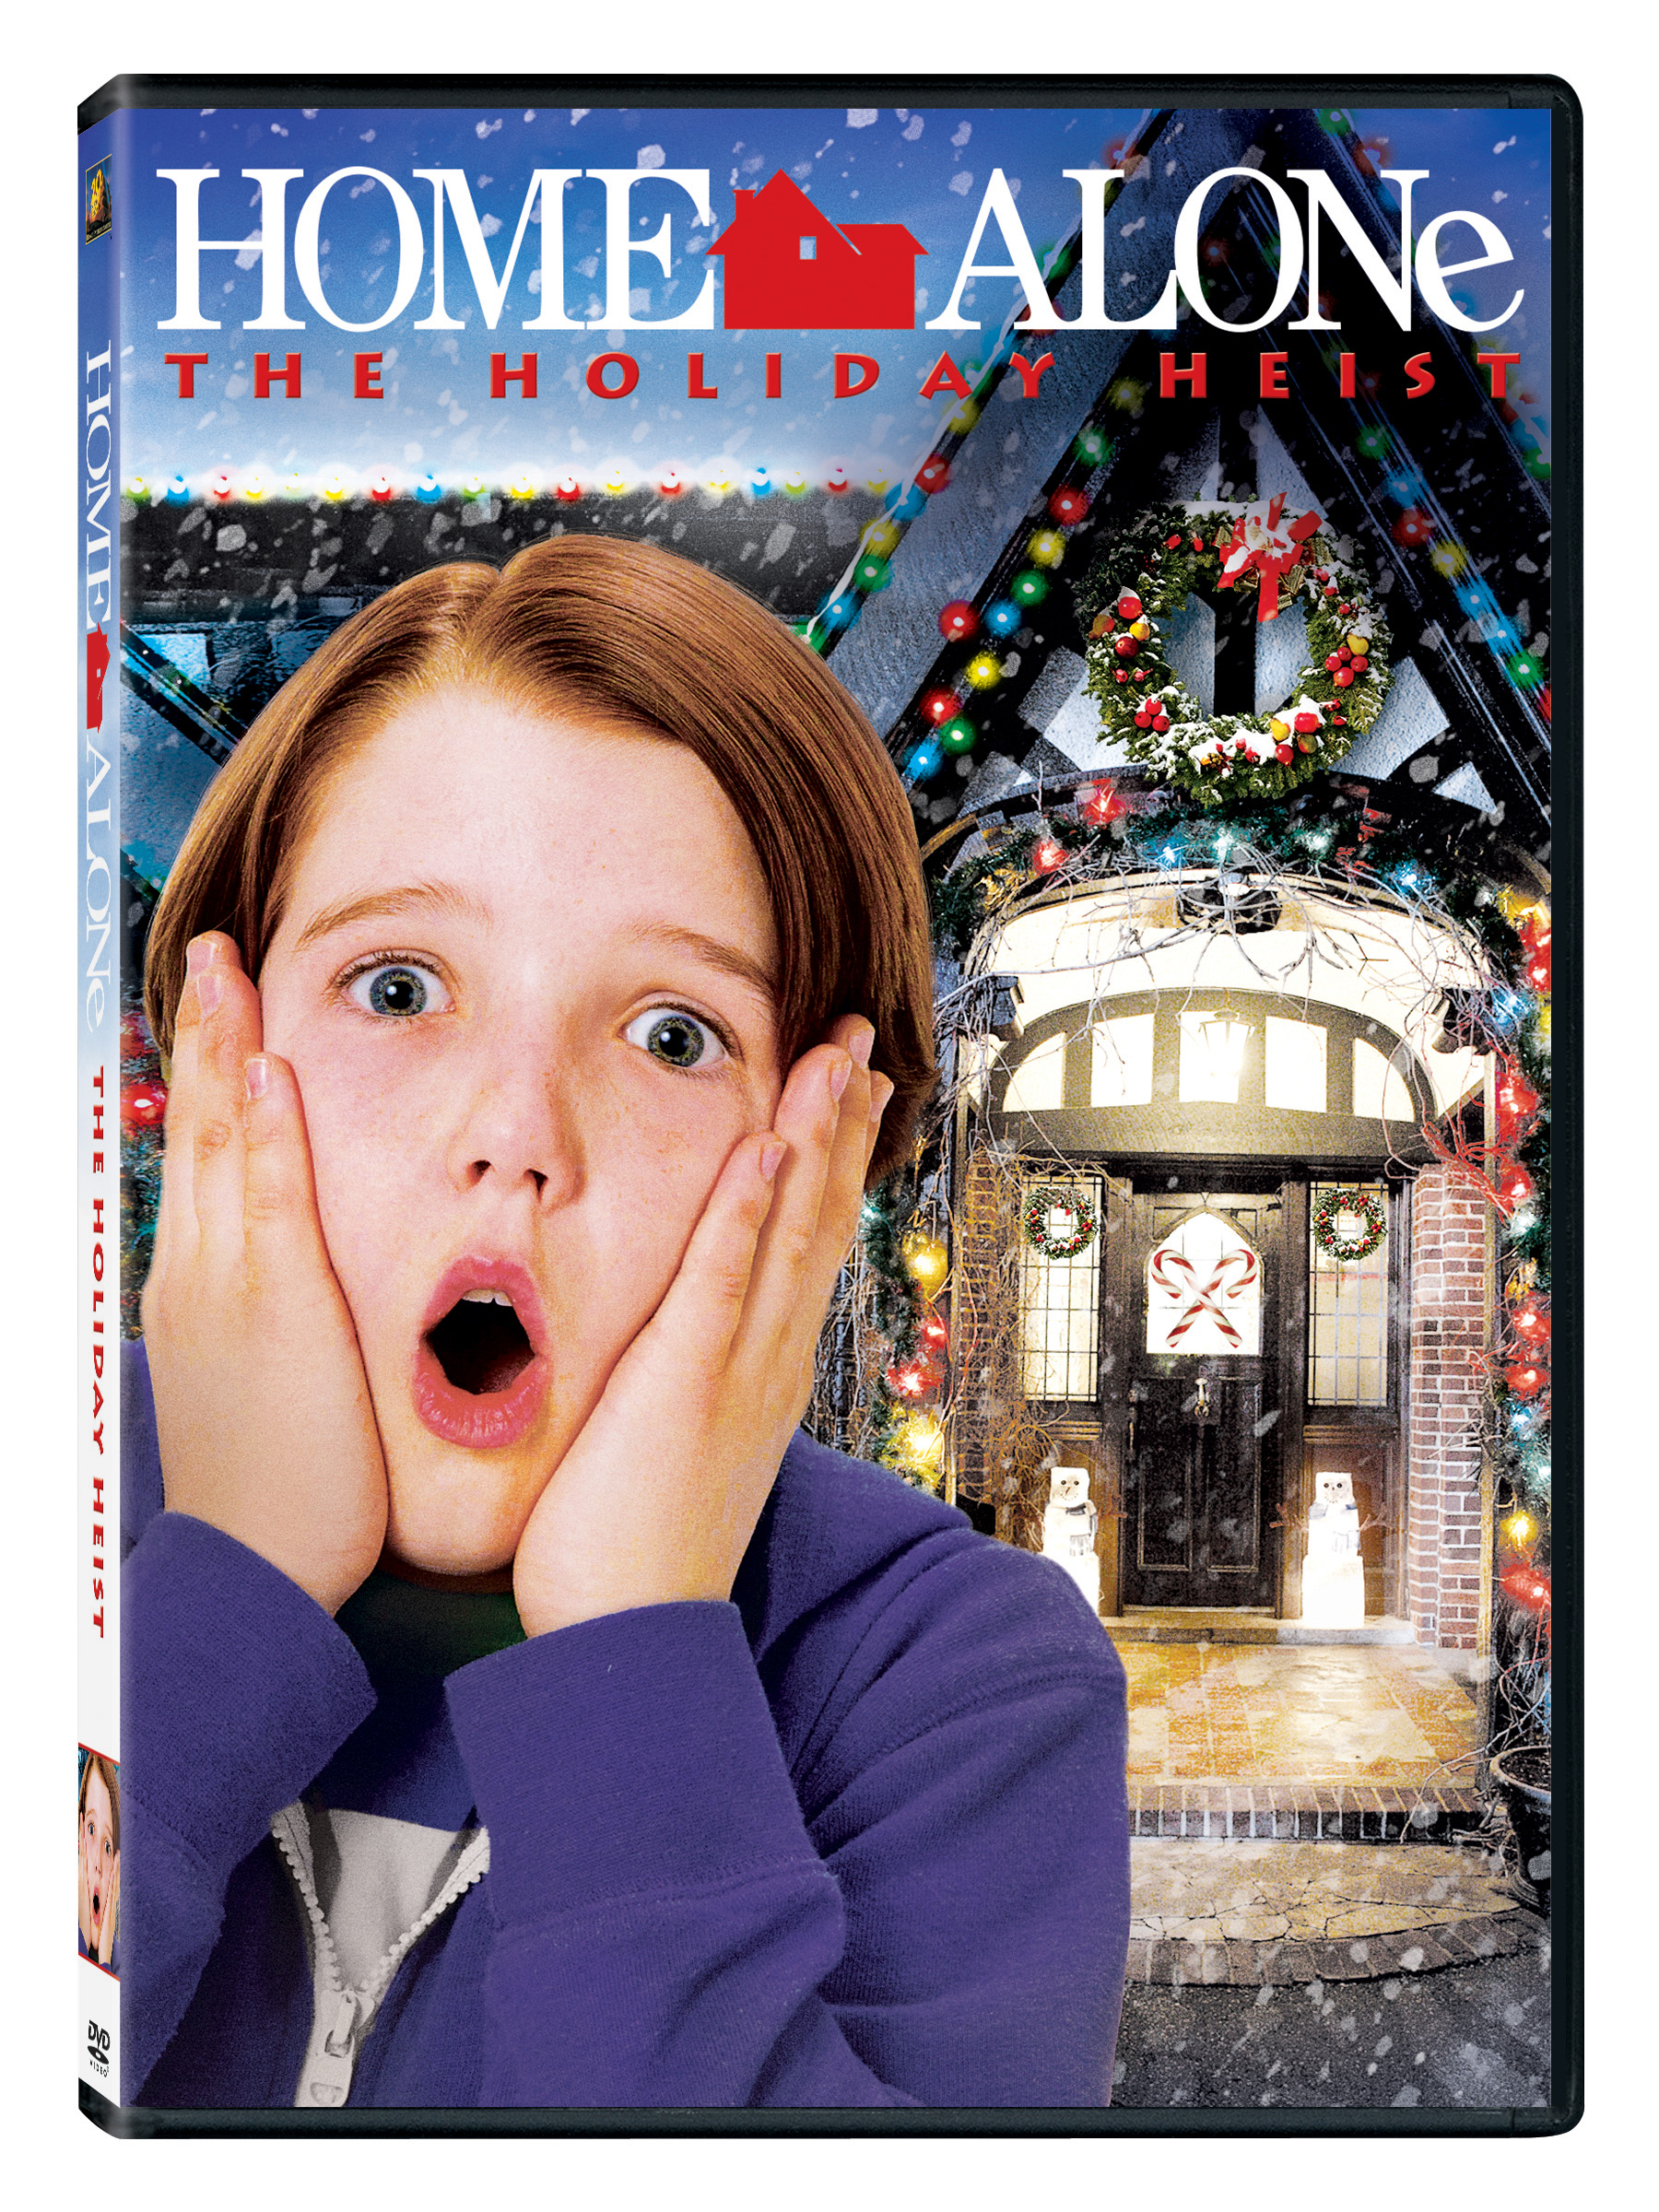 Bad Guy Set It Off Home Alone Holiday Heist Review